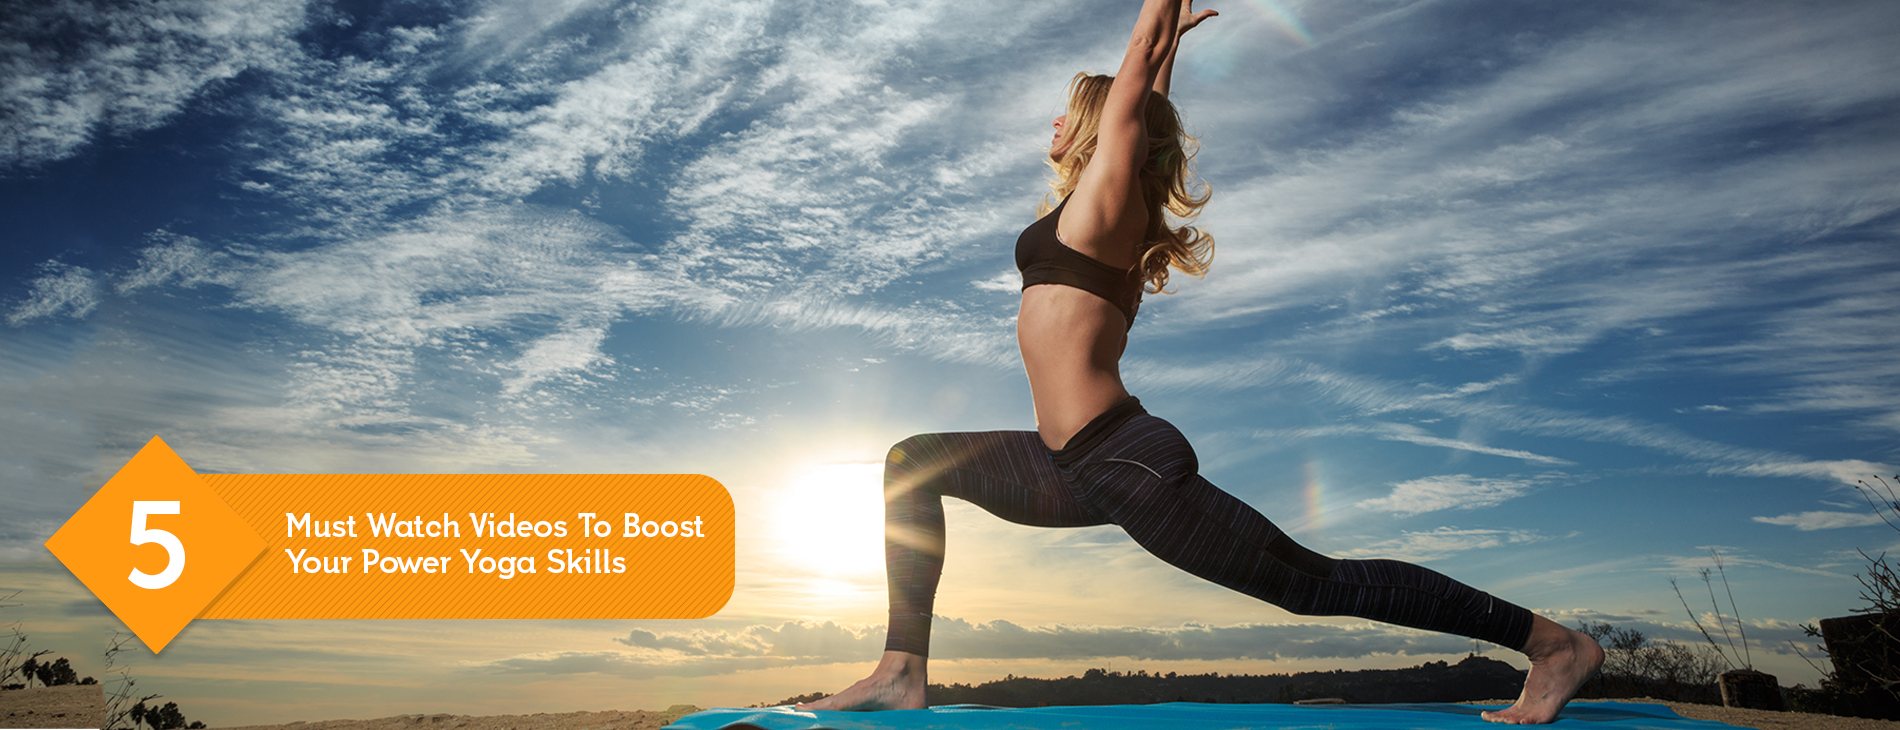 5 Must Watch Videos To Boost Your Power Yoga Skills